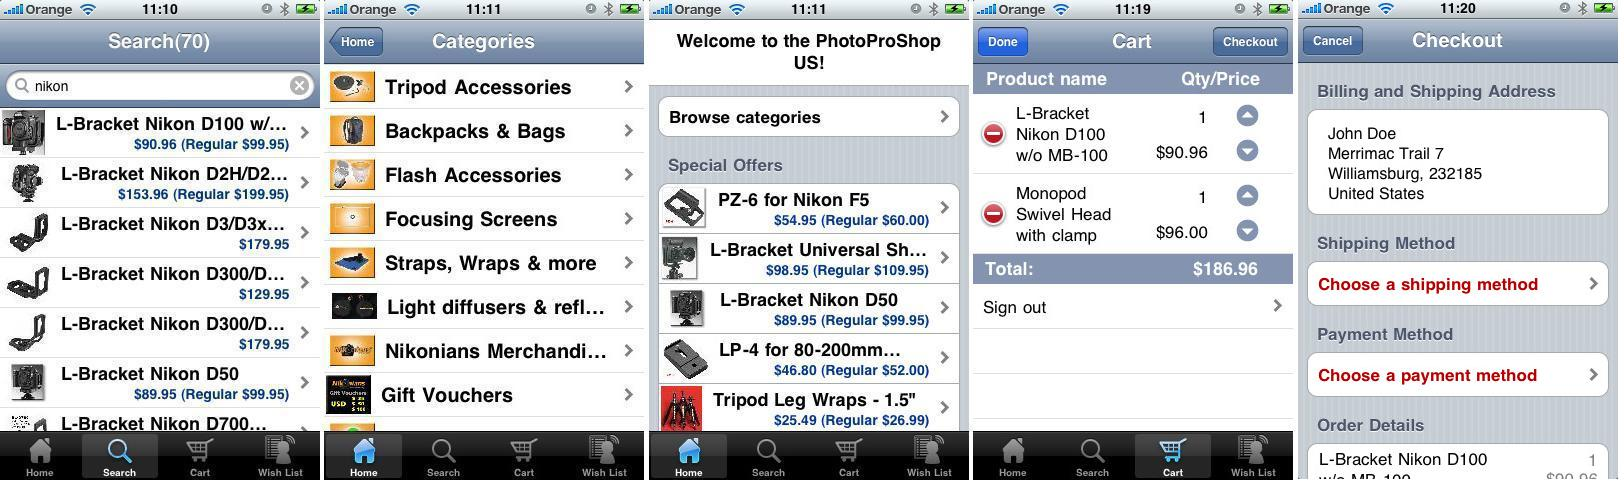 PhotoProShop by Nikonians app